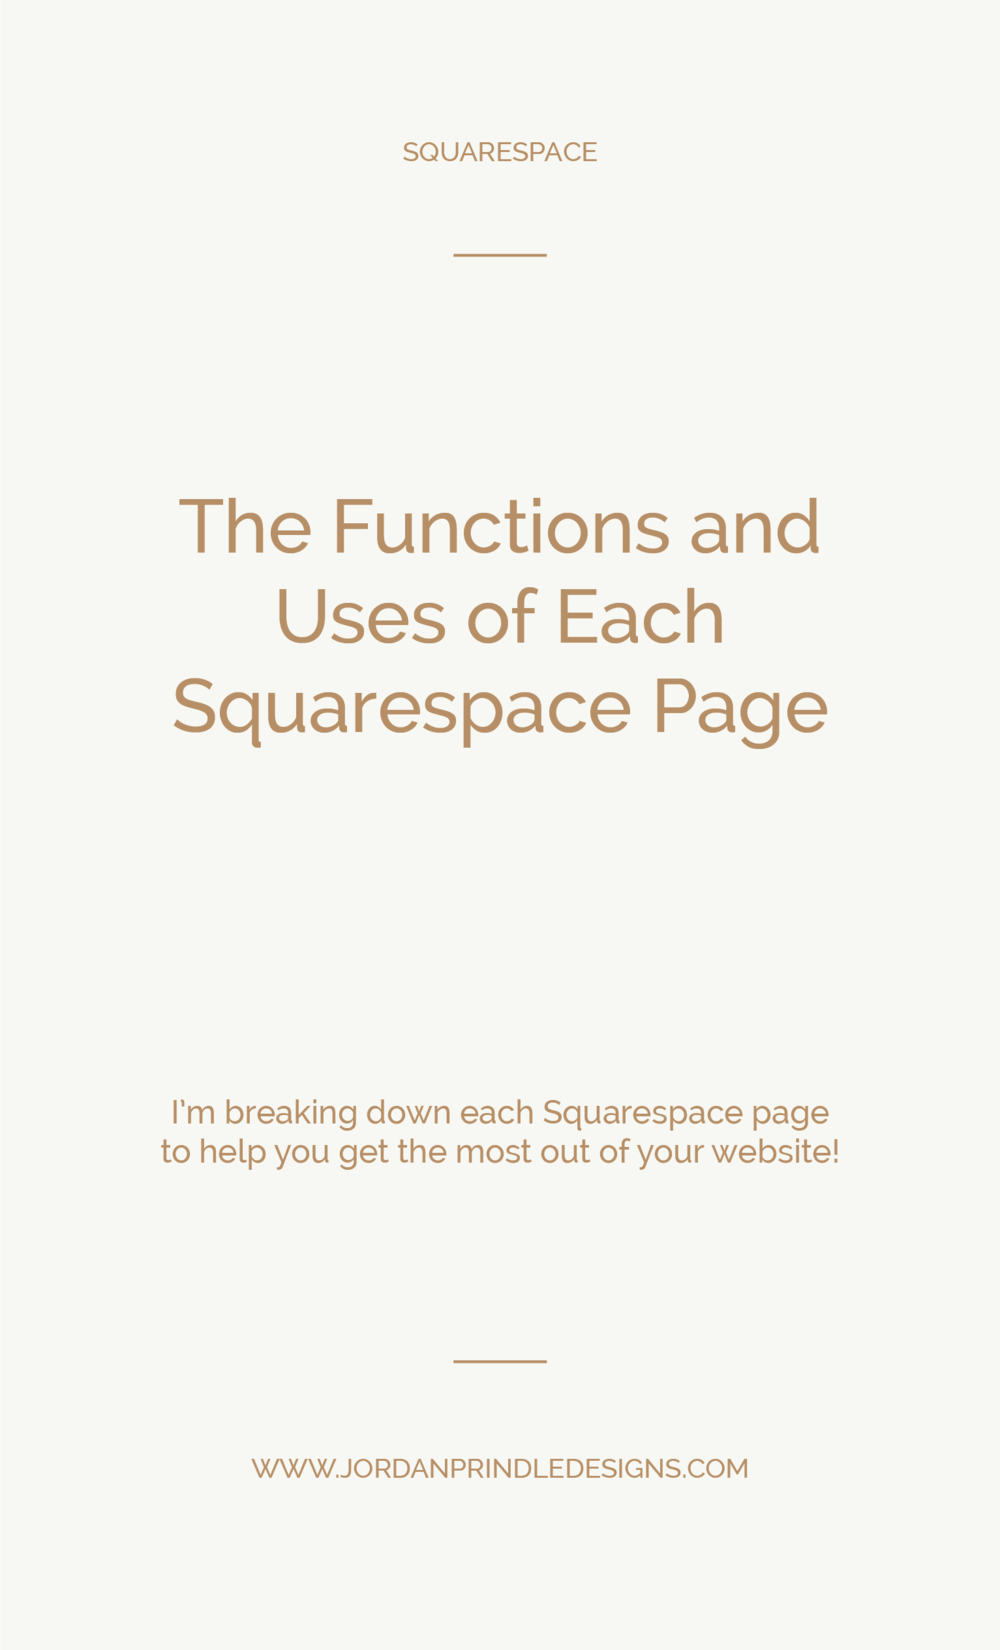 The Functions and Uses of Each Squarespace Page | Are you new to Squarespace? Trying to figure out all the details of customizing your website is no easy task. Learn more about the uses of each page at www.jordanprindledesigns.com #squarespacedesigner #websitedesign #branddesigner